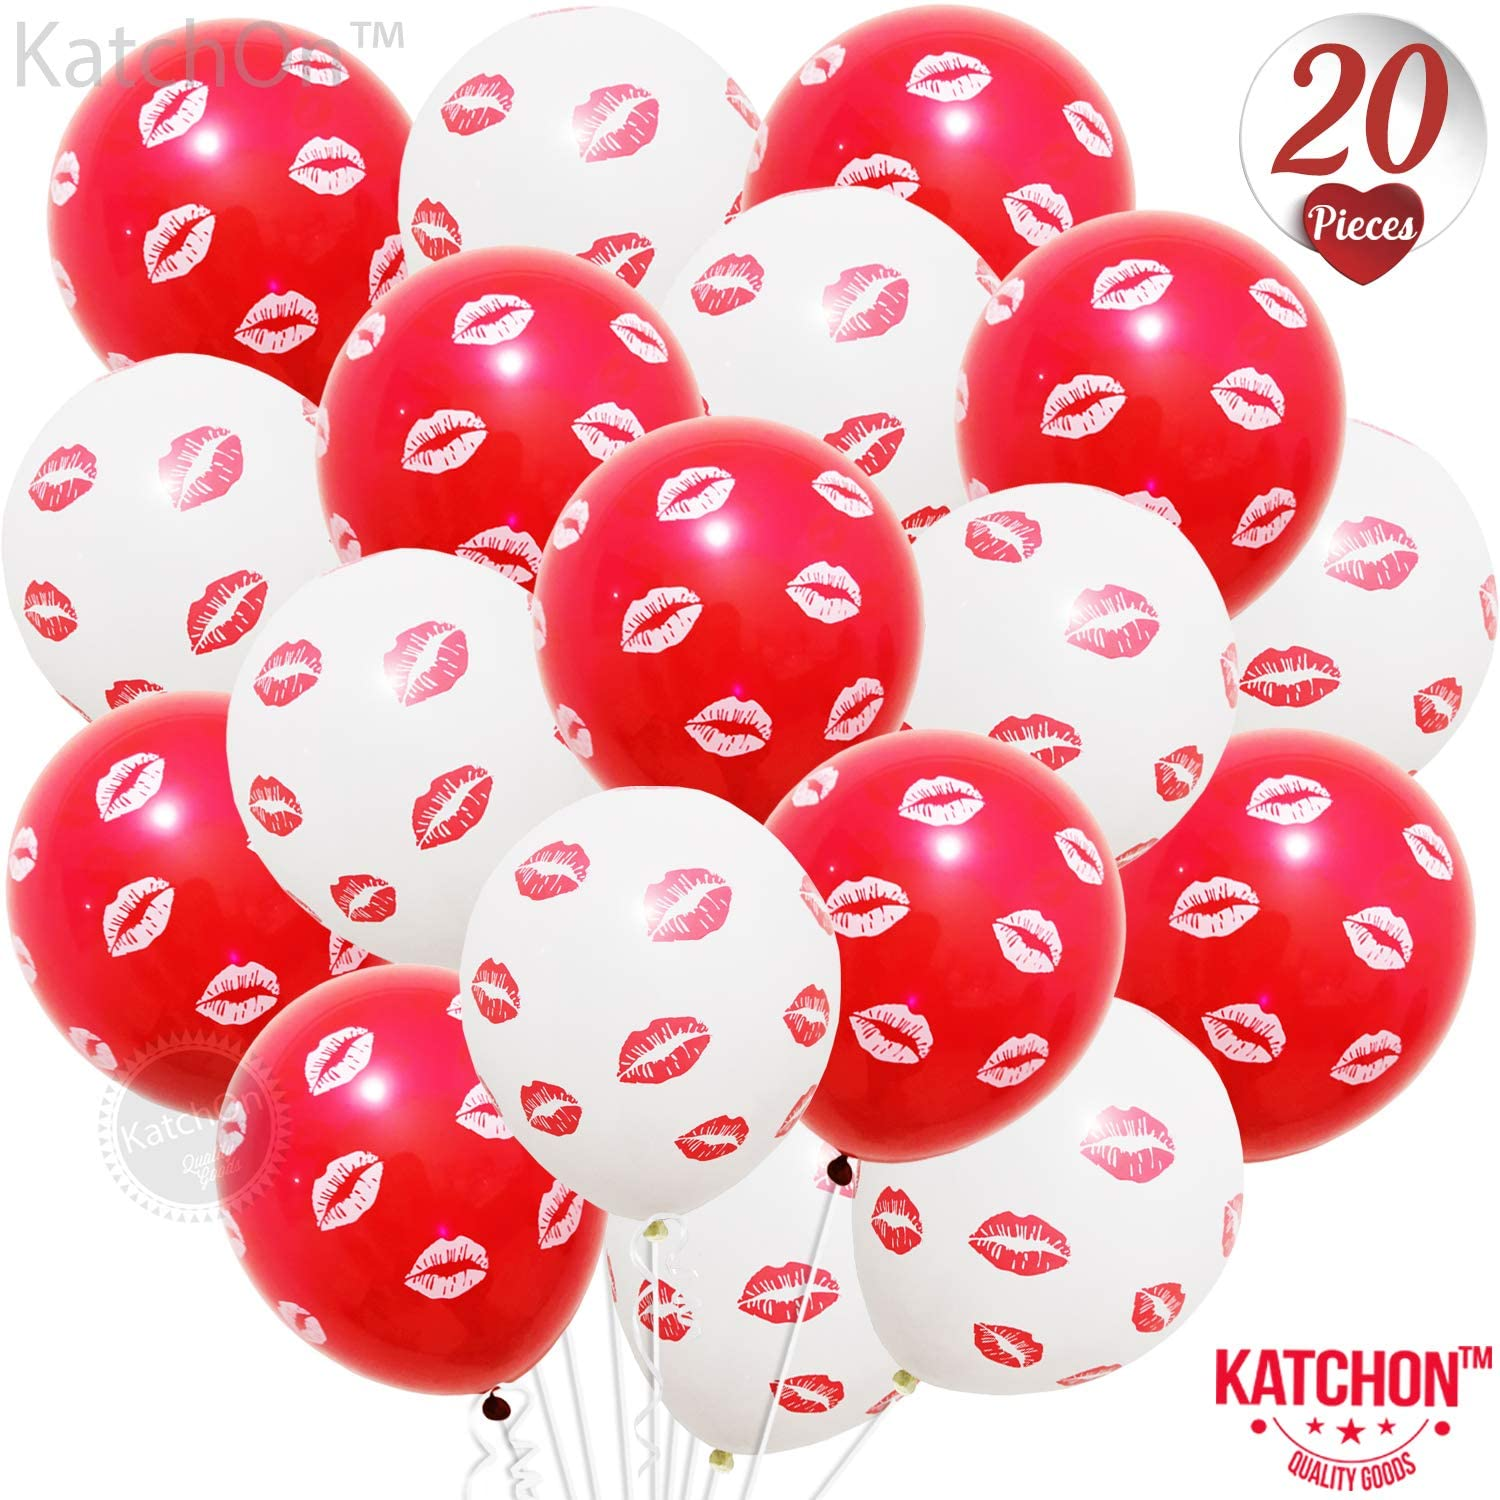 Red and White Kiss Lip Balloons Kit - Pack of 20 | Latex Red Lip Balloons | Valentine Balloons for Valentines Day Decorations | Romantic Red and White Balloons for Anniversary, Valentines Party Decor